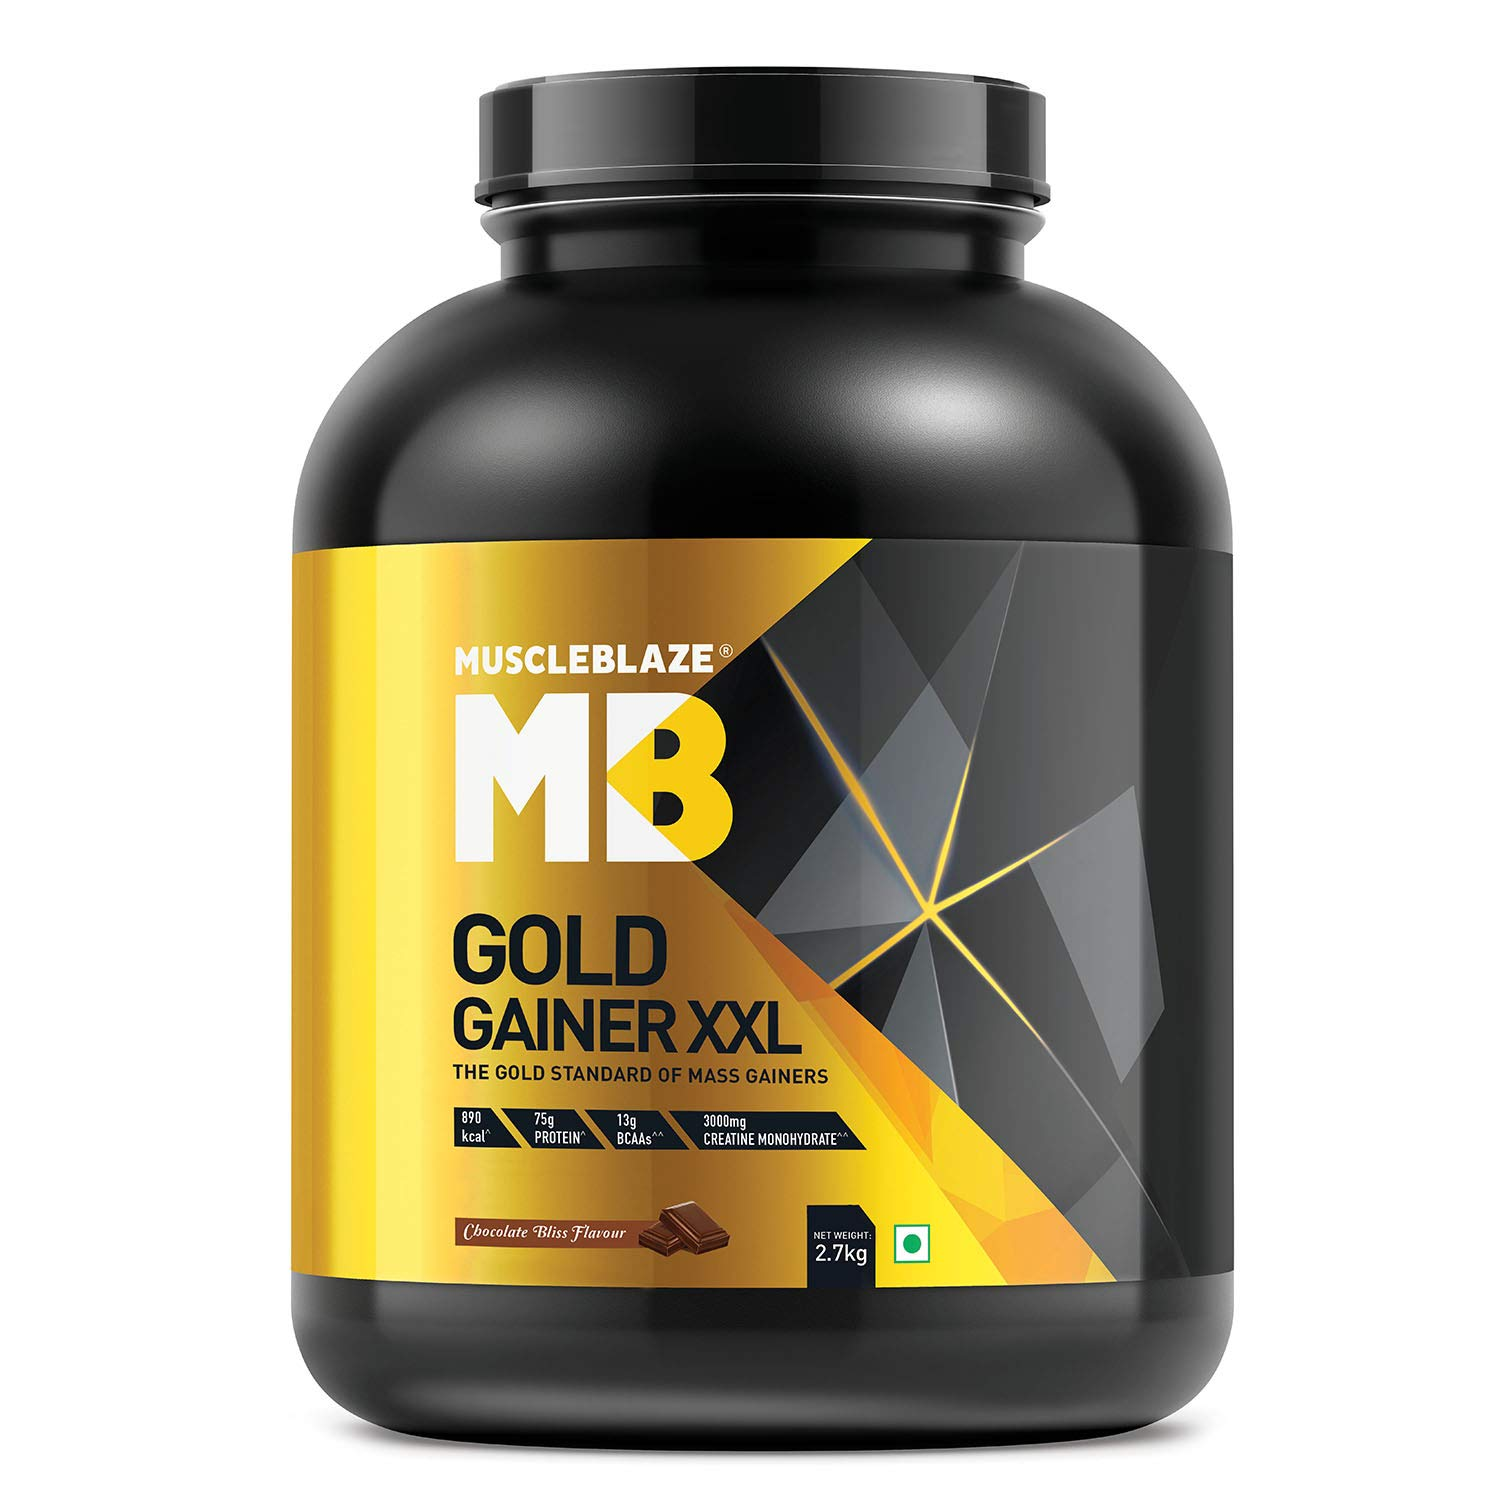 Muscleblaze Gold Gainer